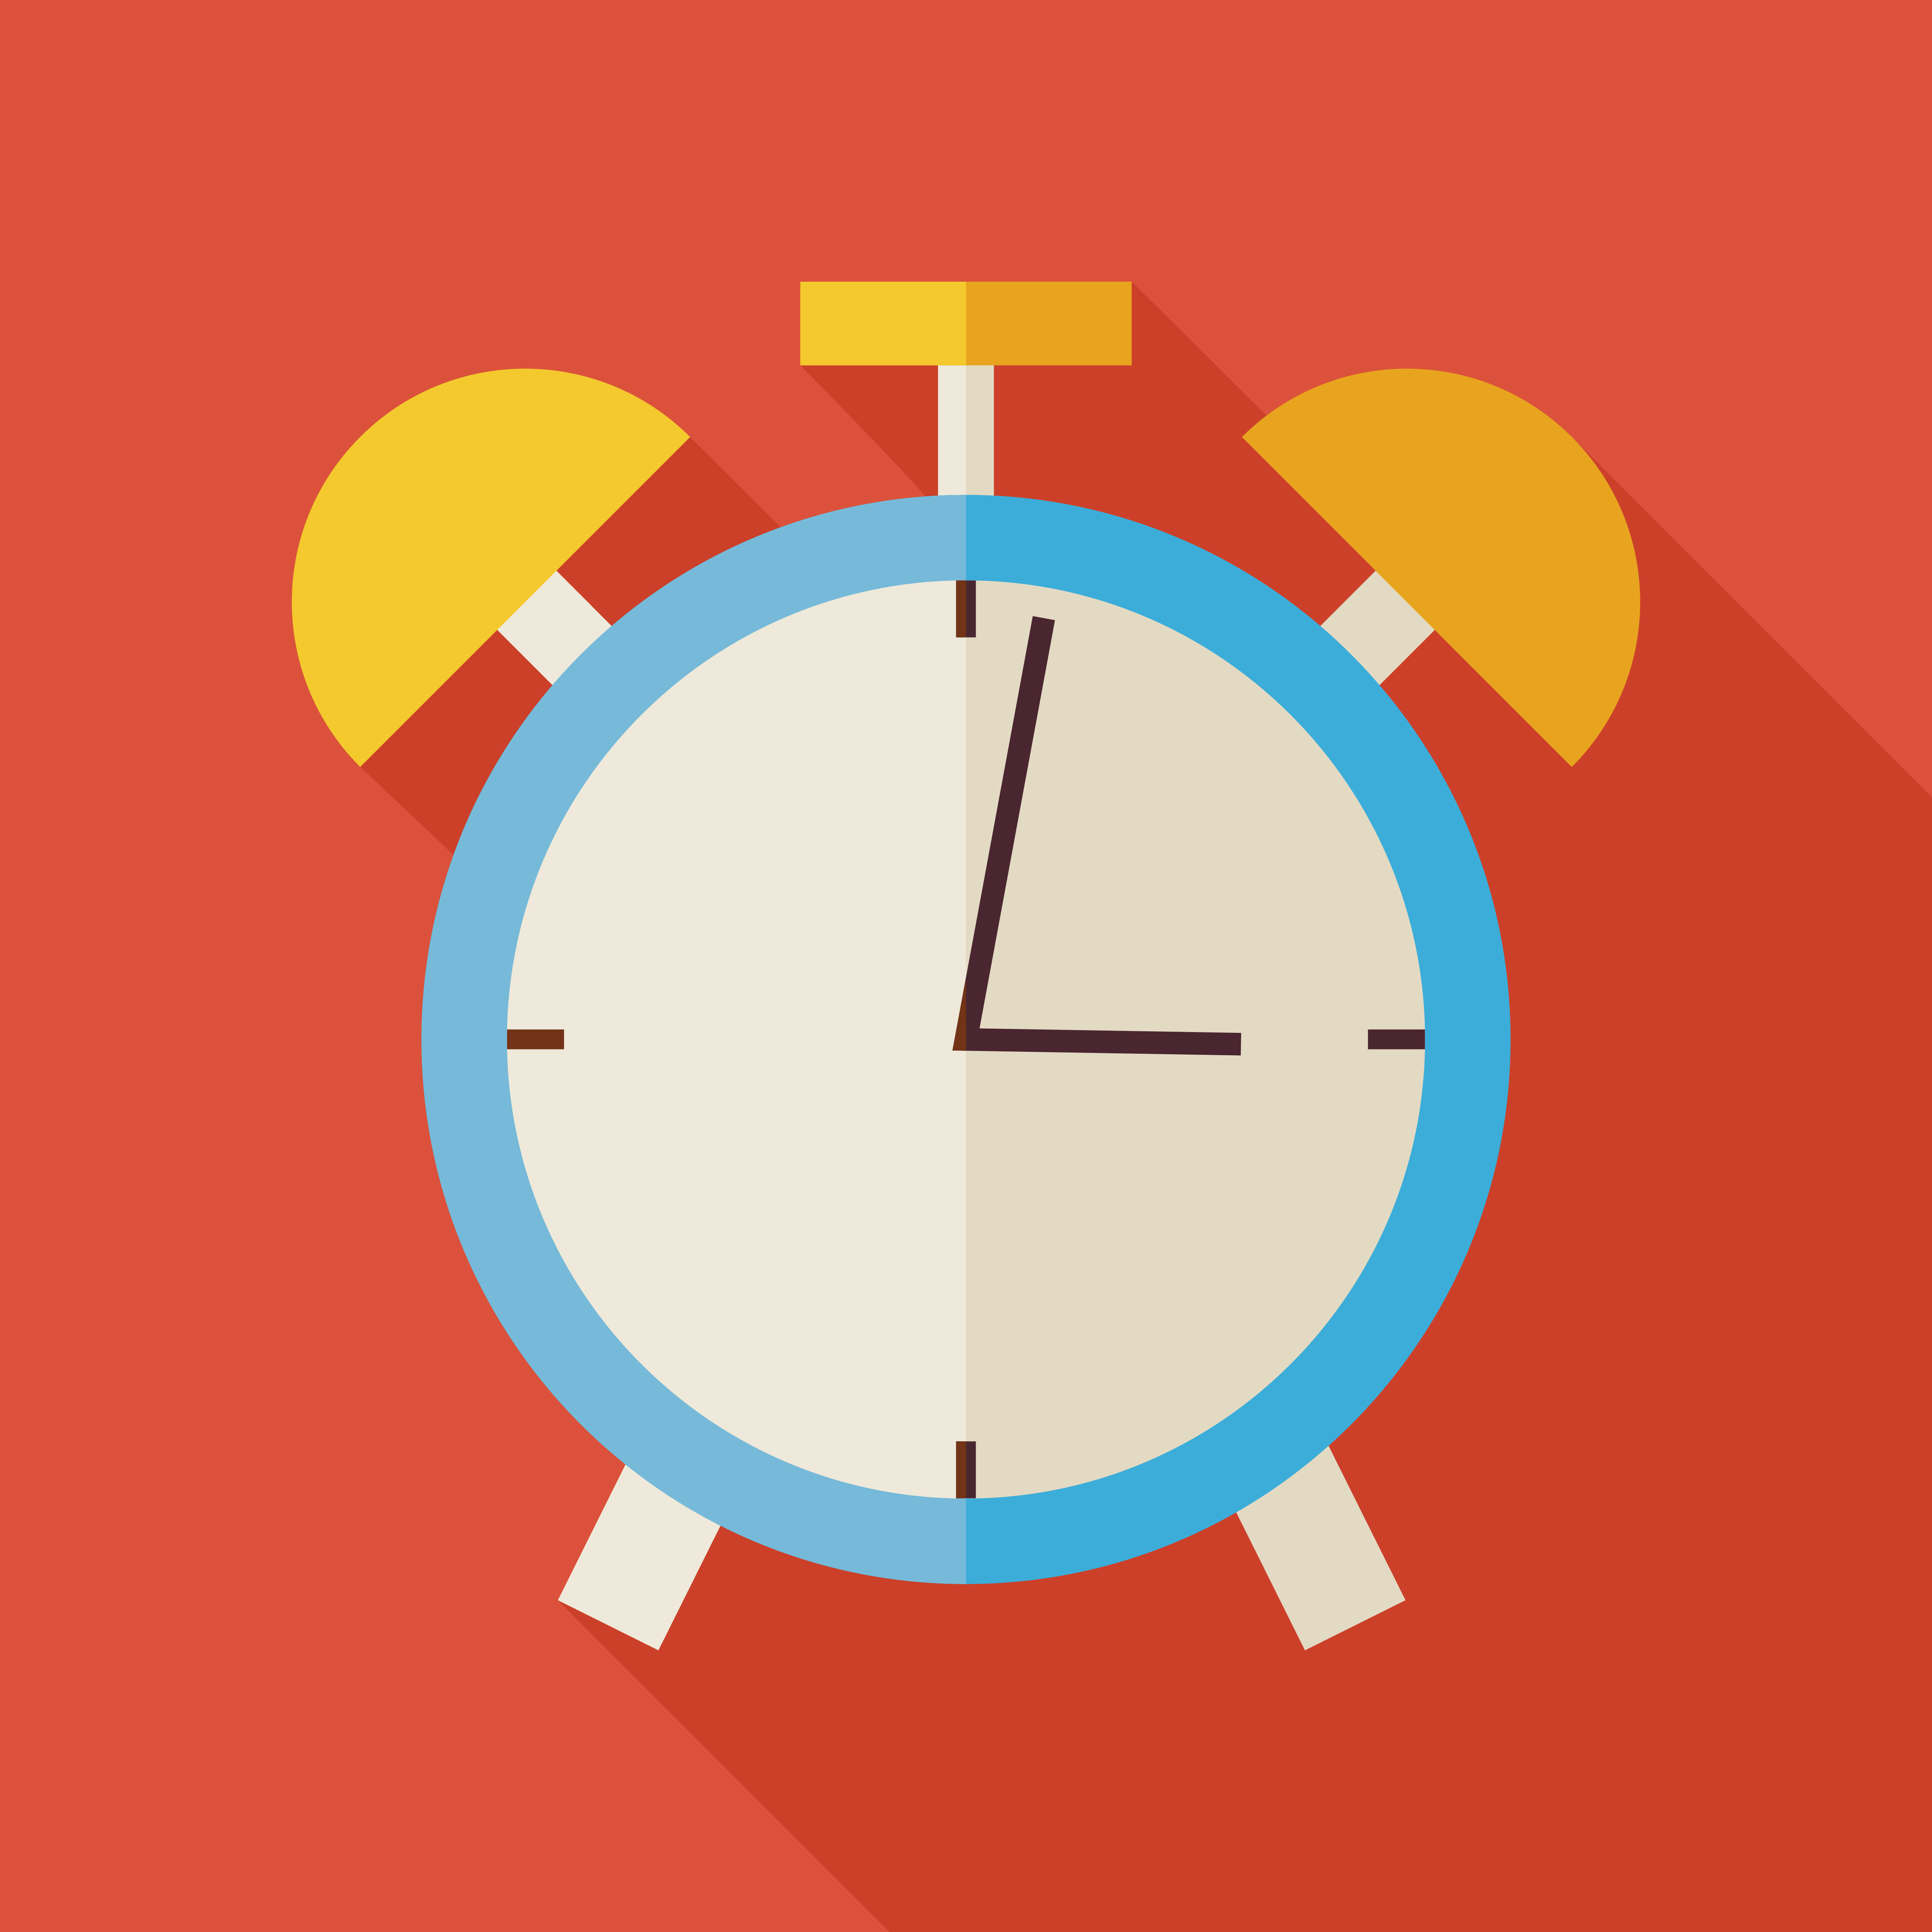 Flat Alarm Clock Illustration with long Shadow. Business Office Workplace Vector Illustration. Office Life Interior Workspace Object. Time Management. School and Education